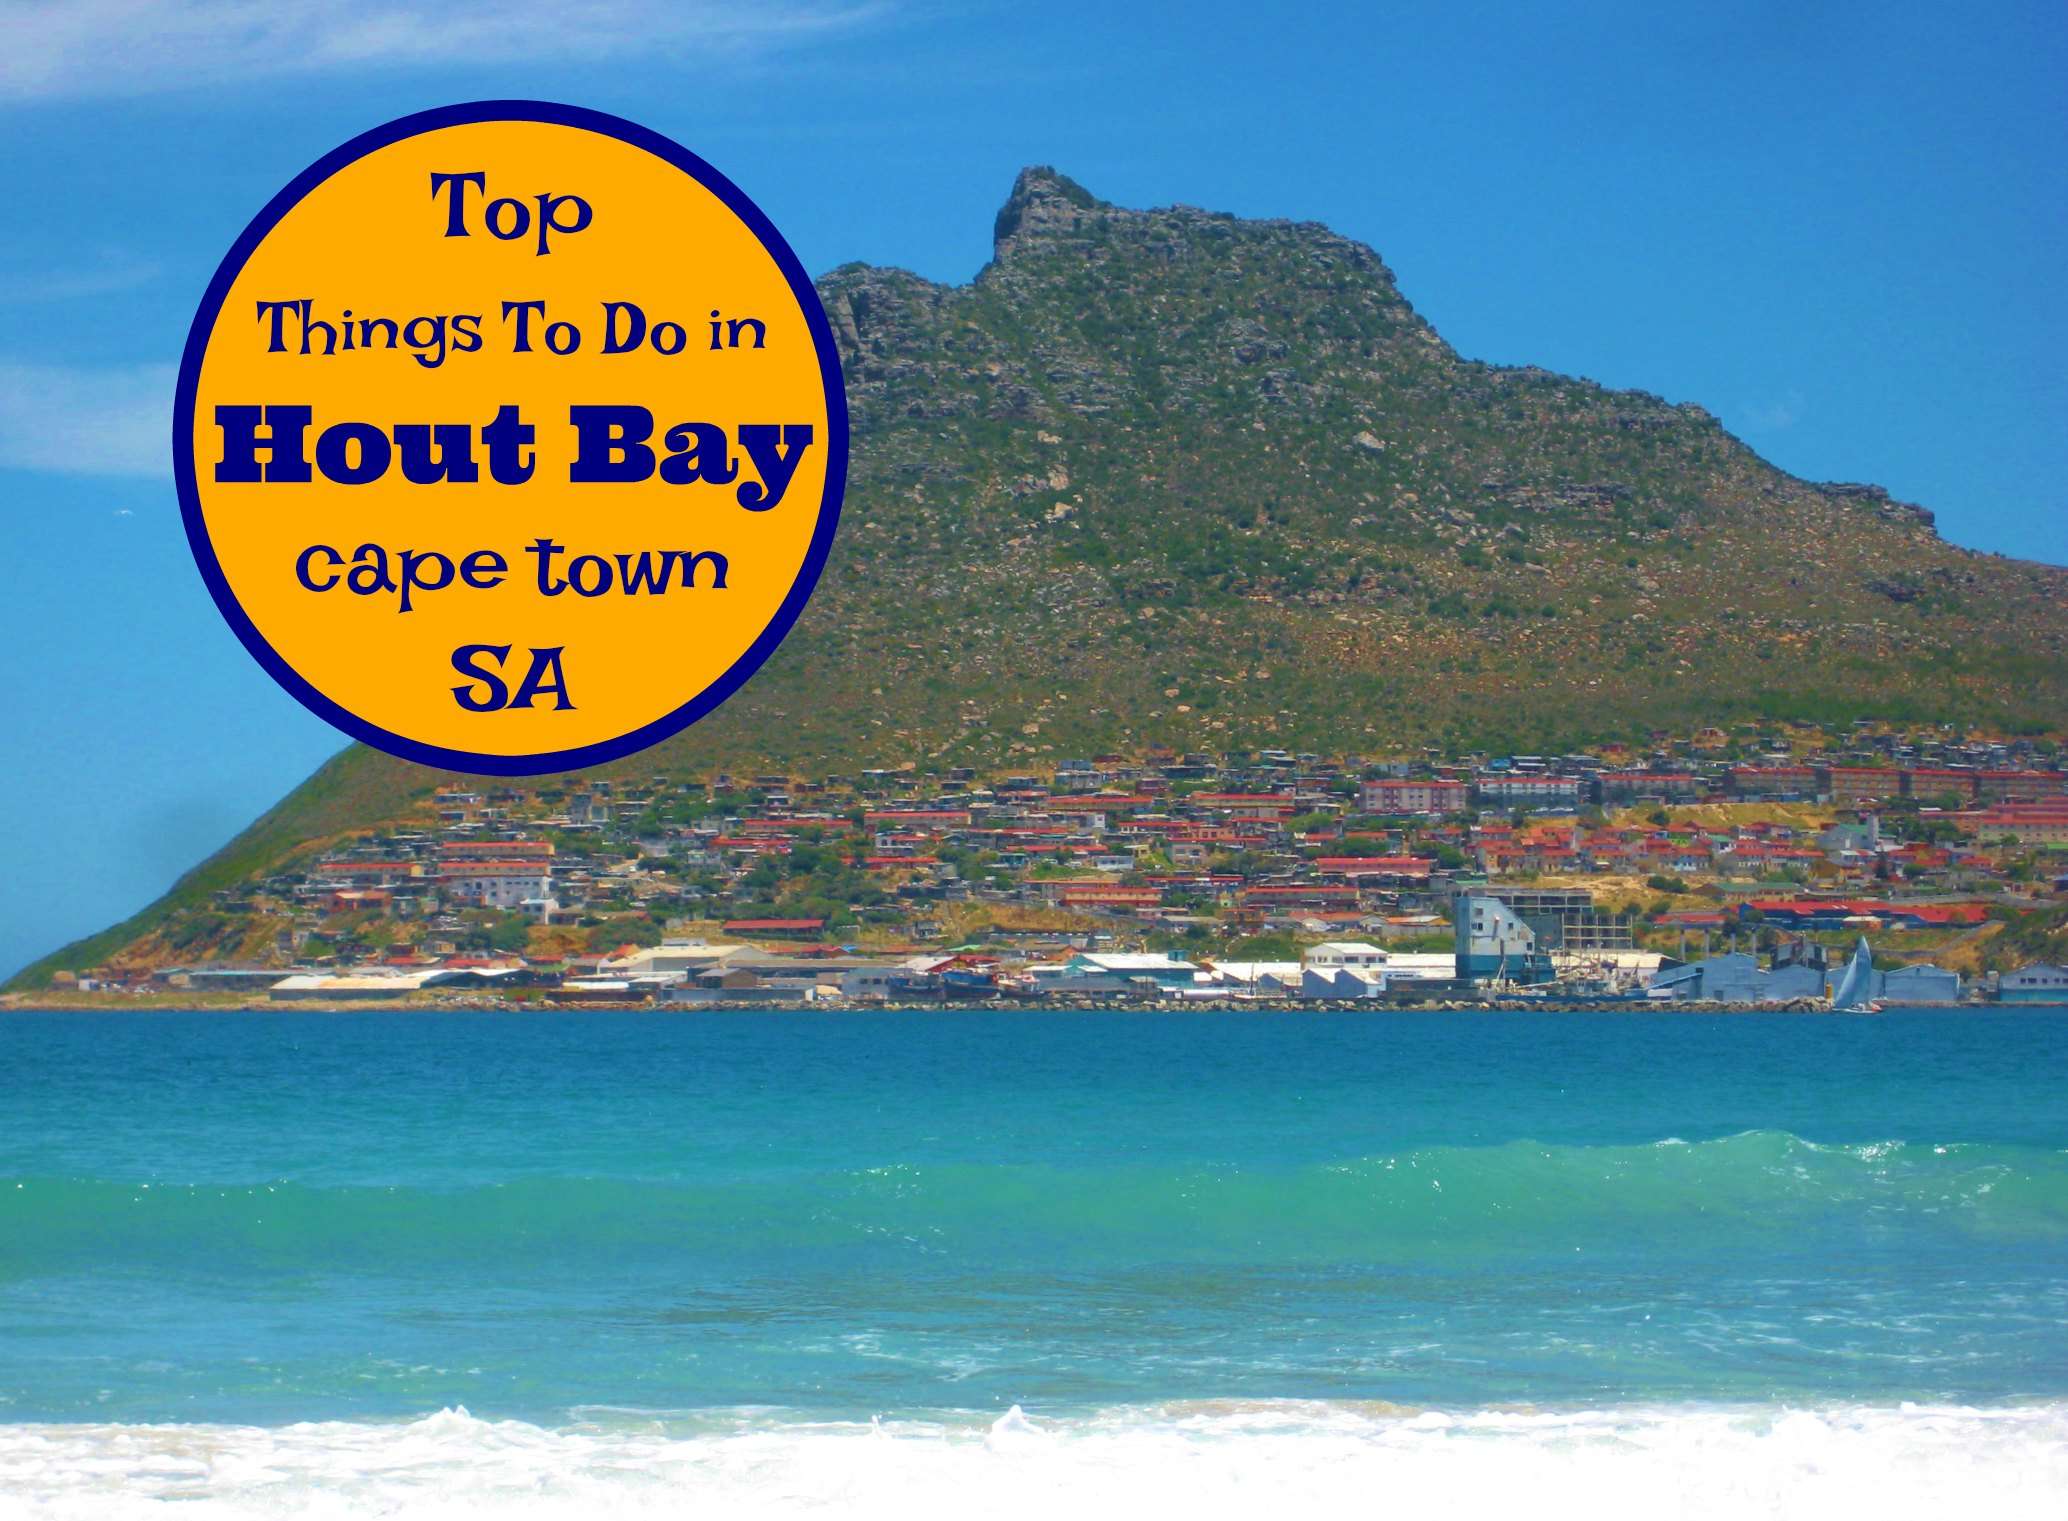 Top Things To Do in Hout Bay Cape Town South Africa by JetSettingFools.com